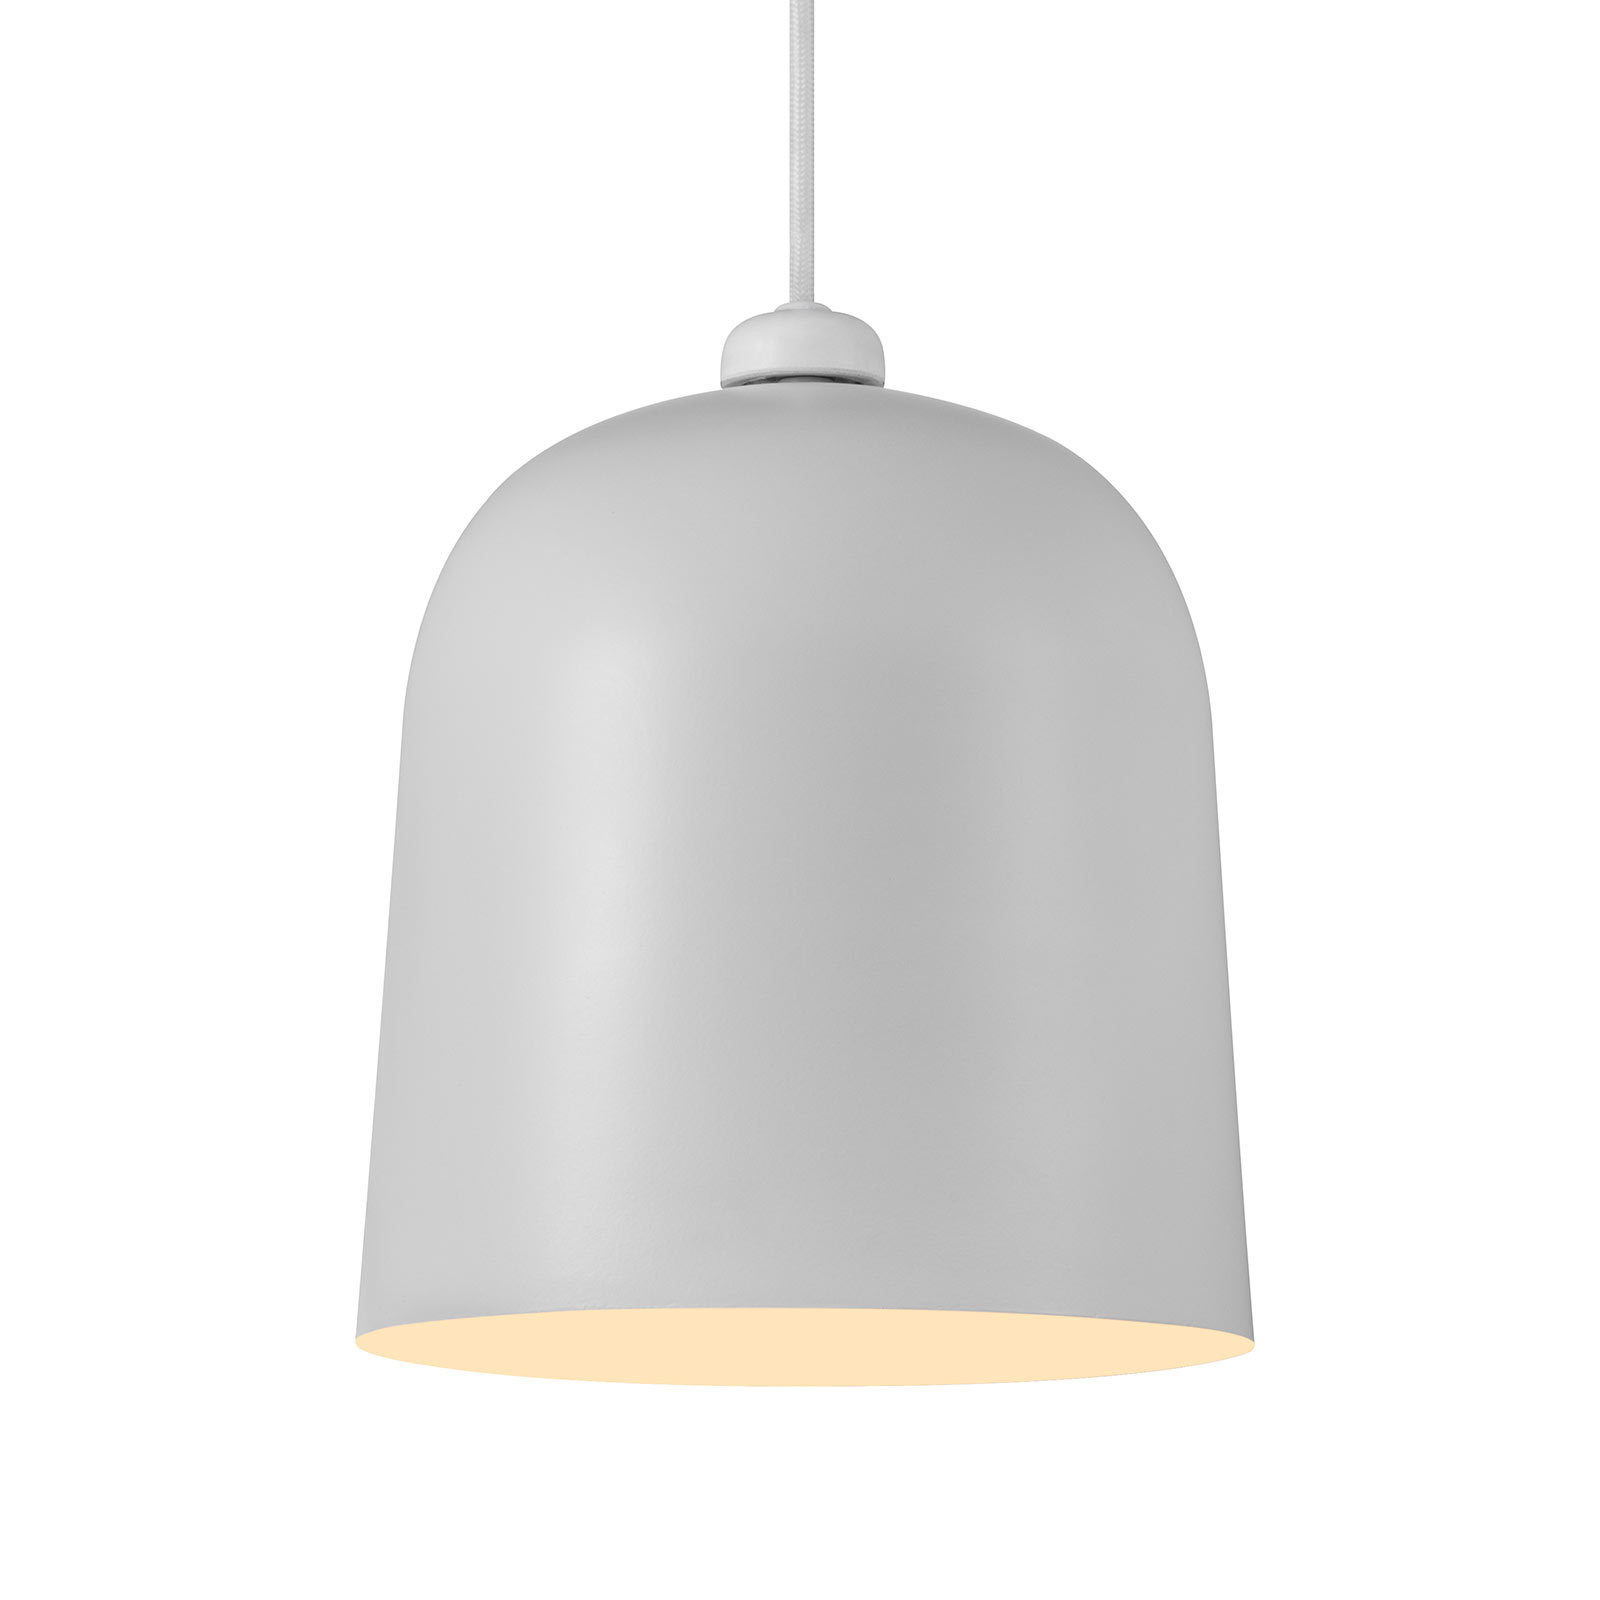 Suspension LED Angle, blanche